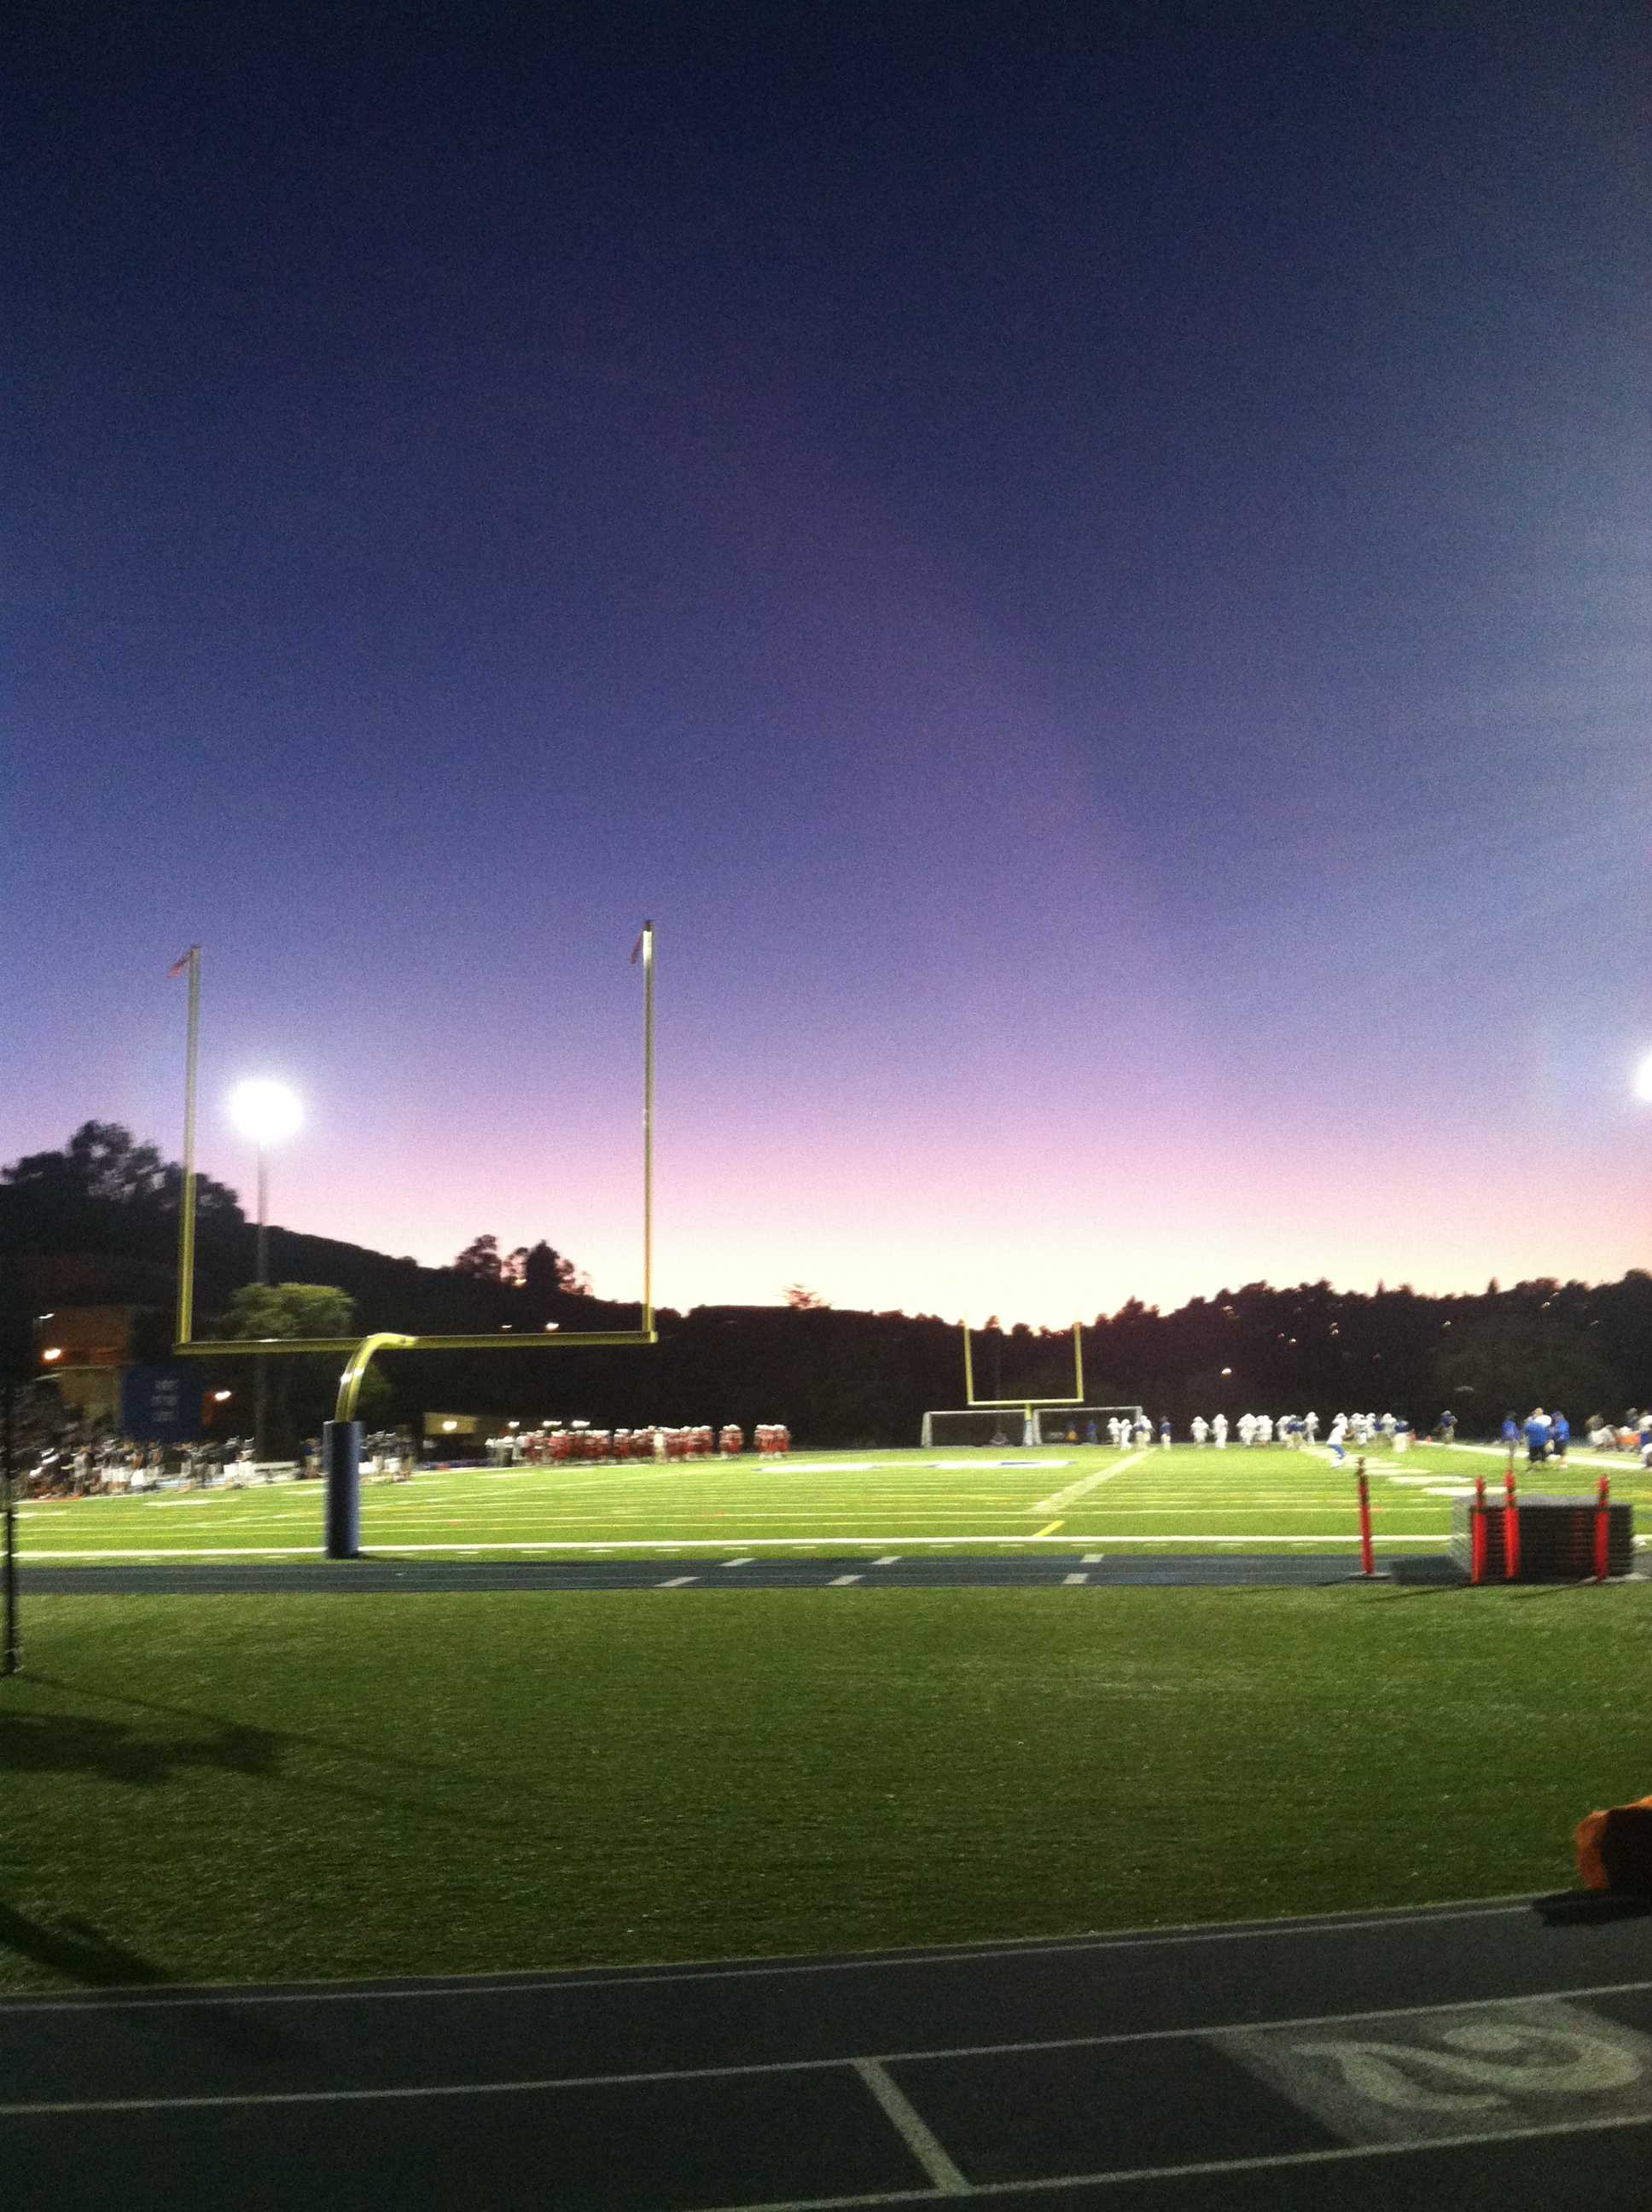 taken at the scrimmage on Friday Aug. 3